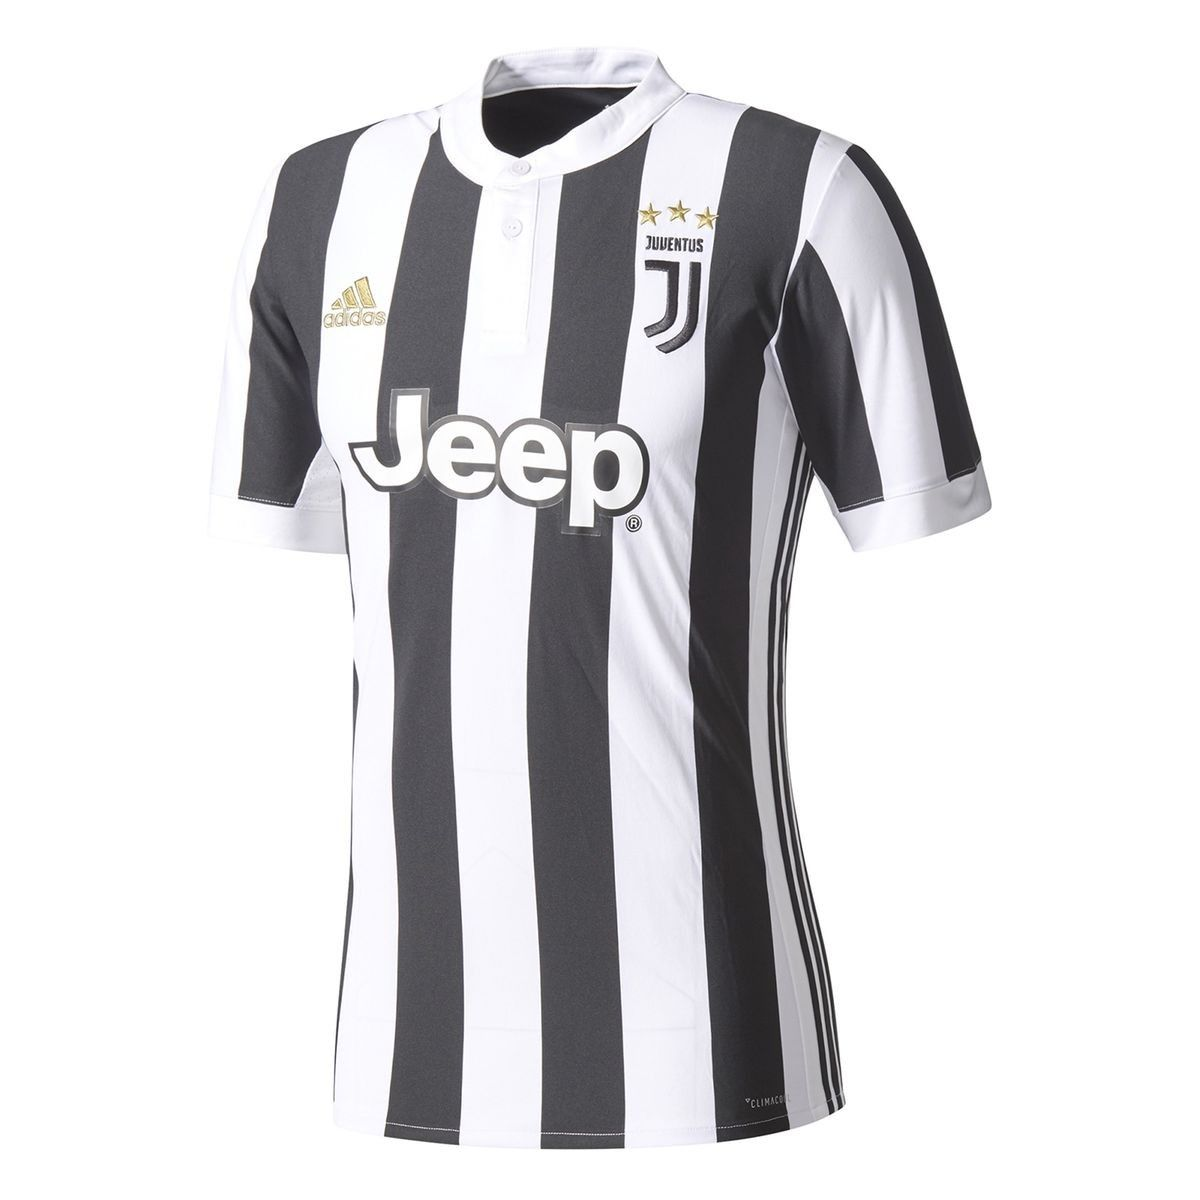 08c708a03 Juventus 18-19 Home Kit Design + Shorts + Socks Leaked - Footy Headlines